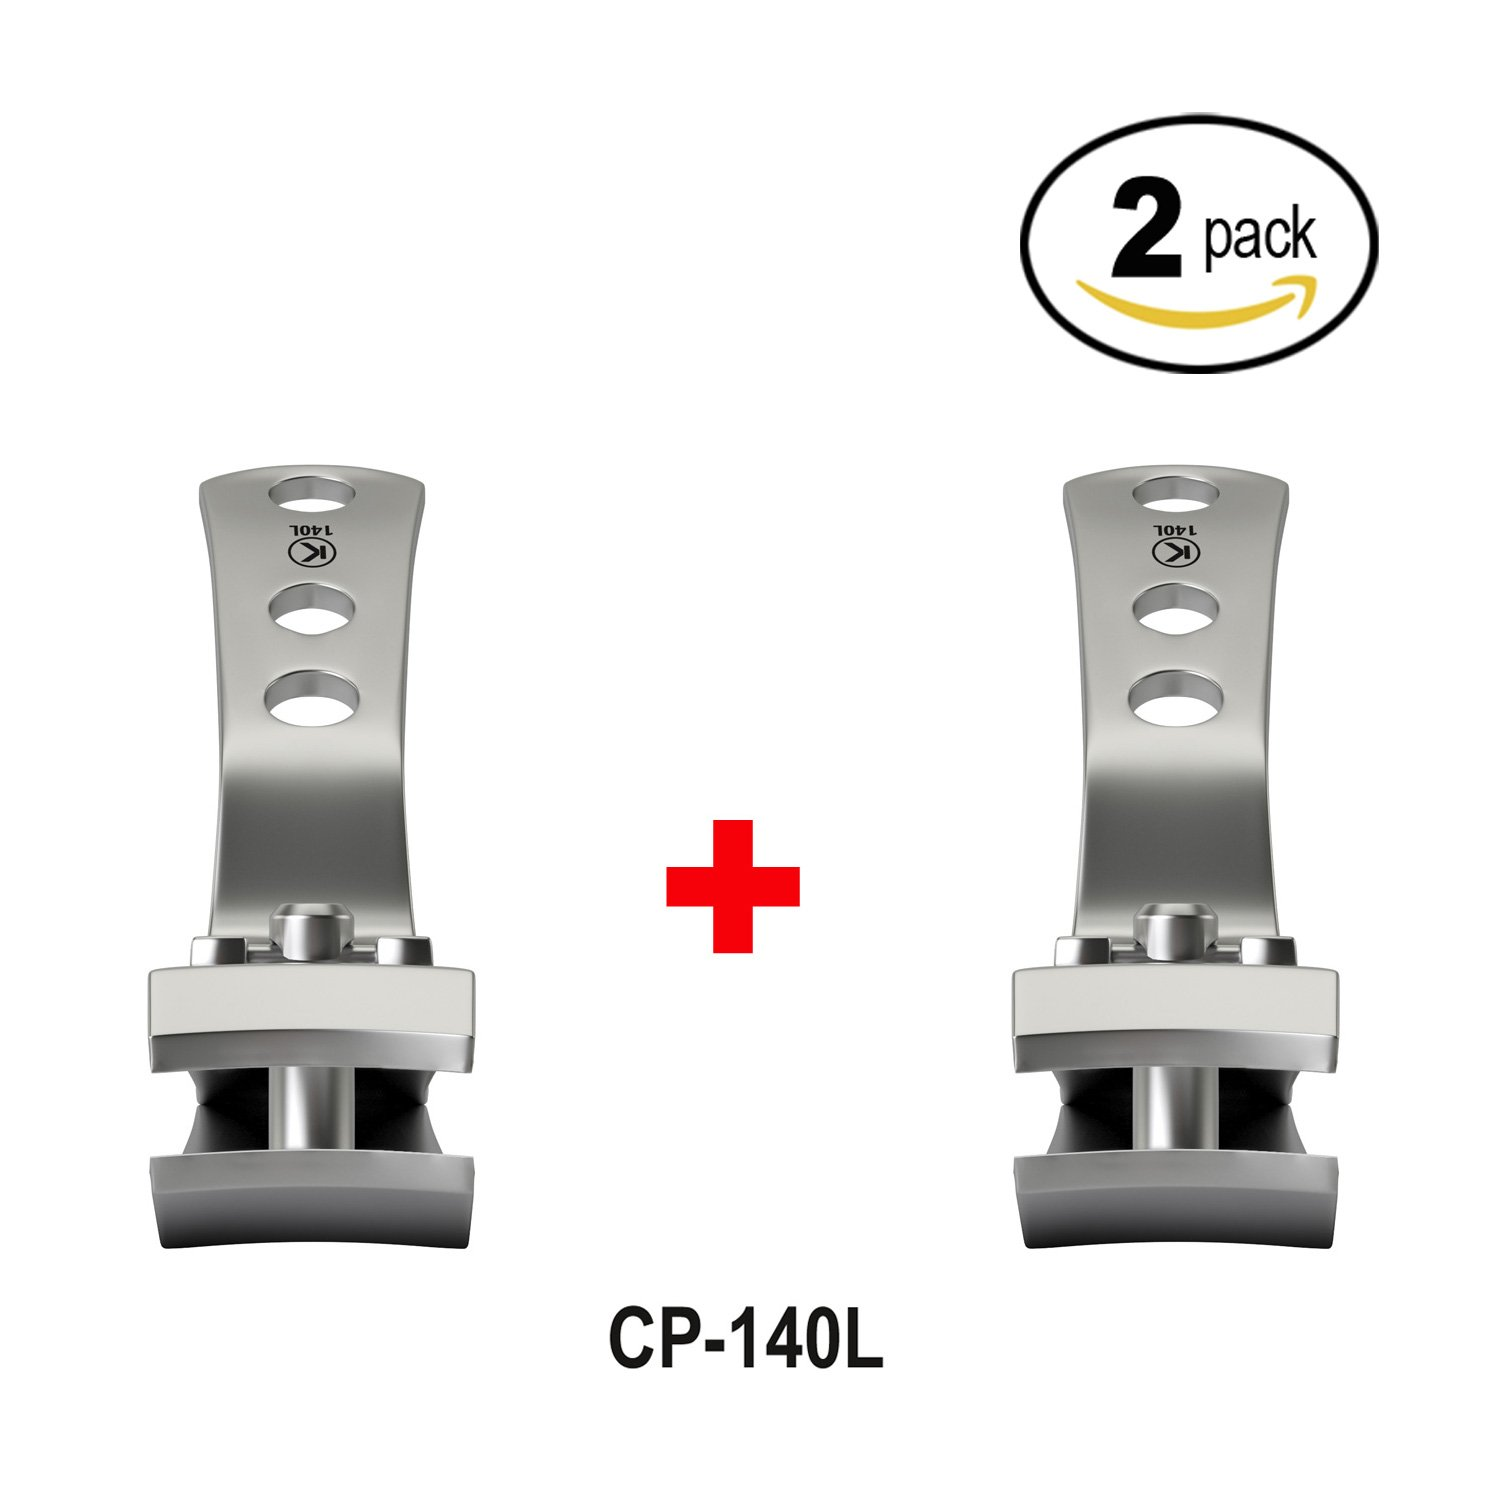 Bundle of 2 Items: Kohm CP-140L 4mm Wide Jaw Curved Blades Nail Clipper (2 Pack)